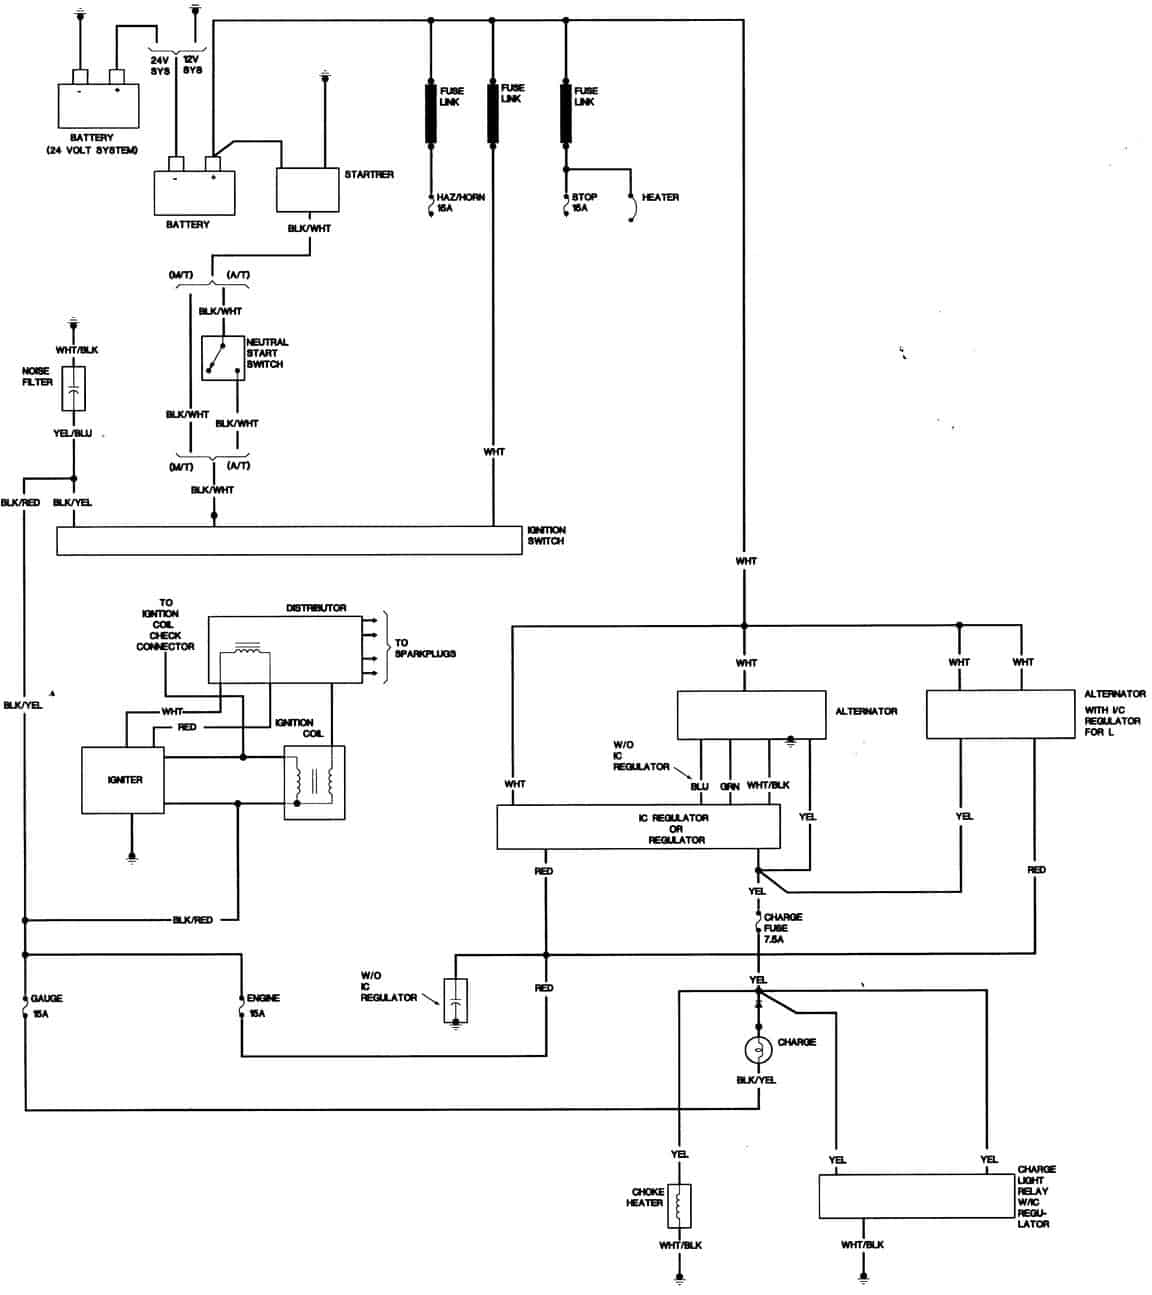 system wiring diagrams toyota fujitsu ten stereo diagram charging 1983 22r pu 4x4 freeautomechanic advice